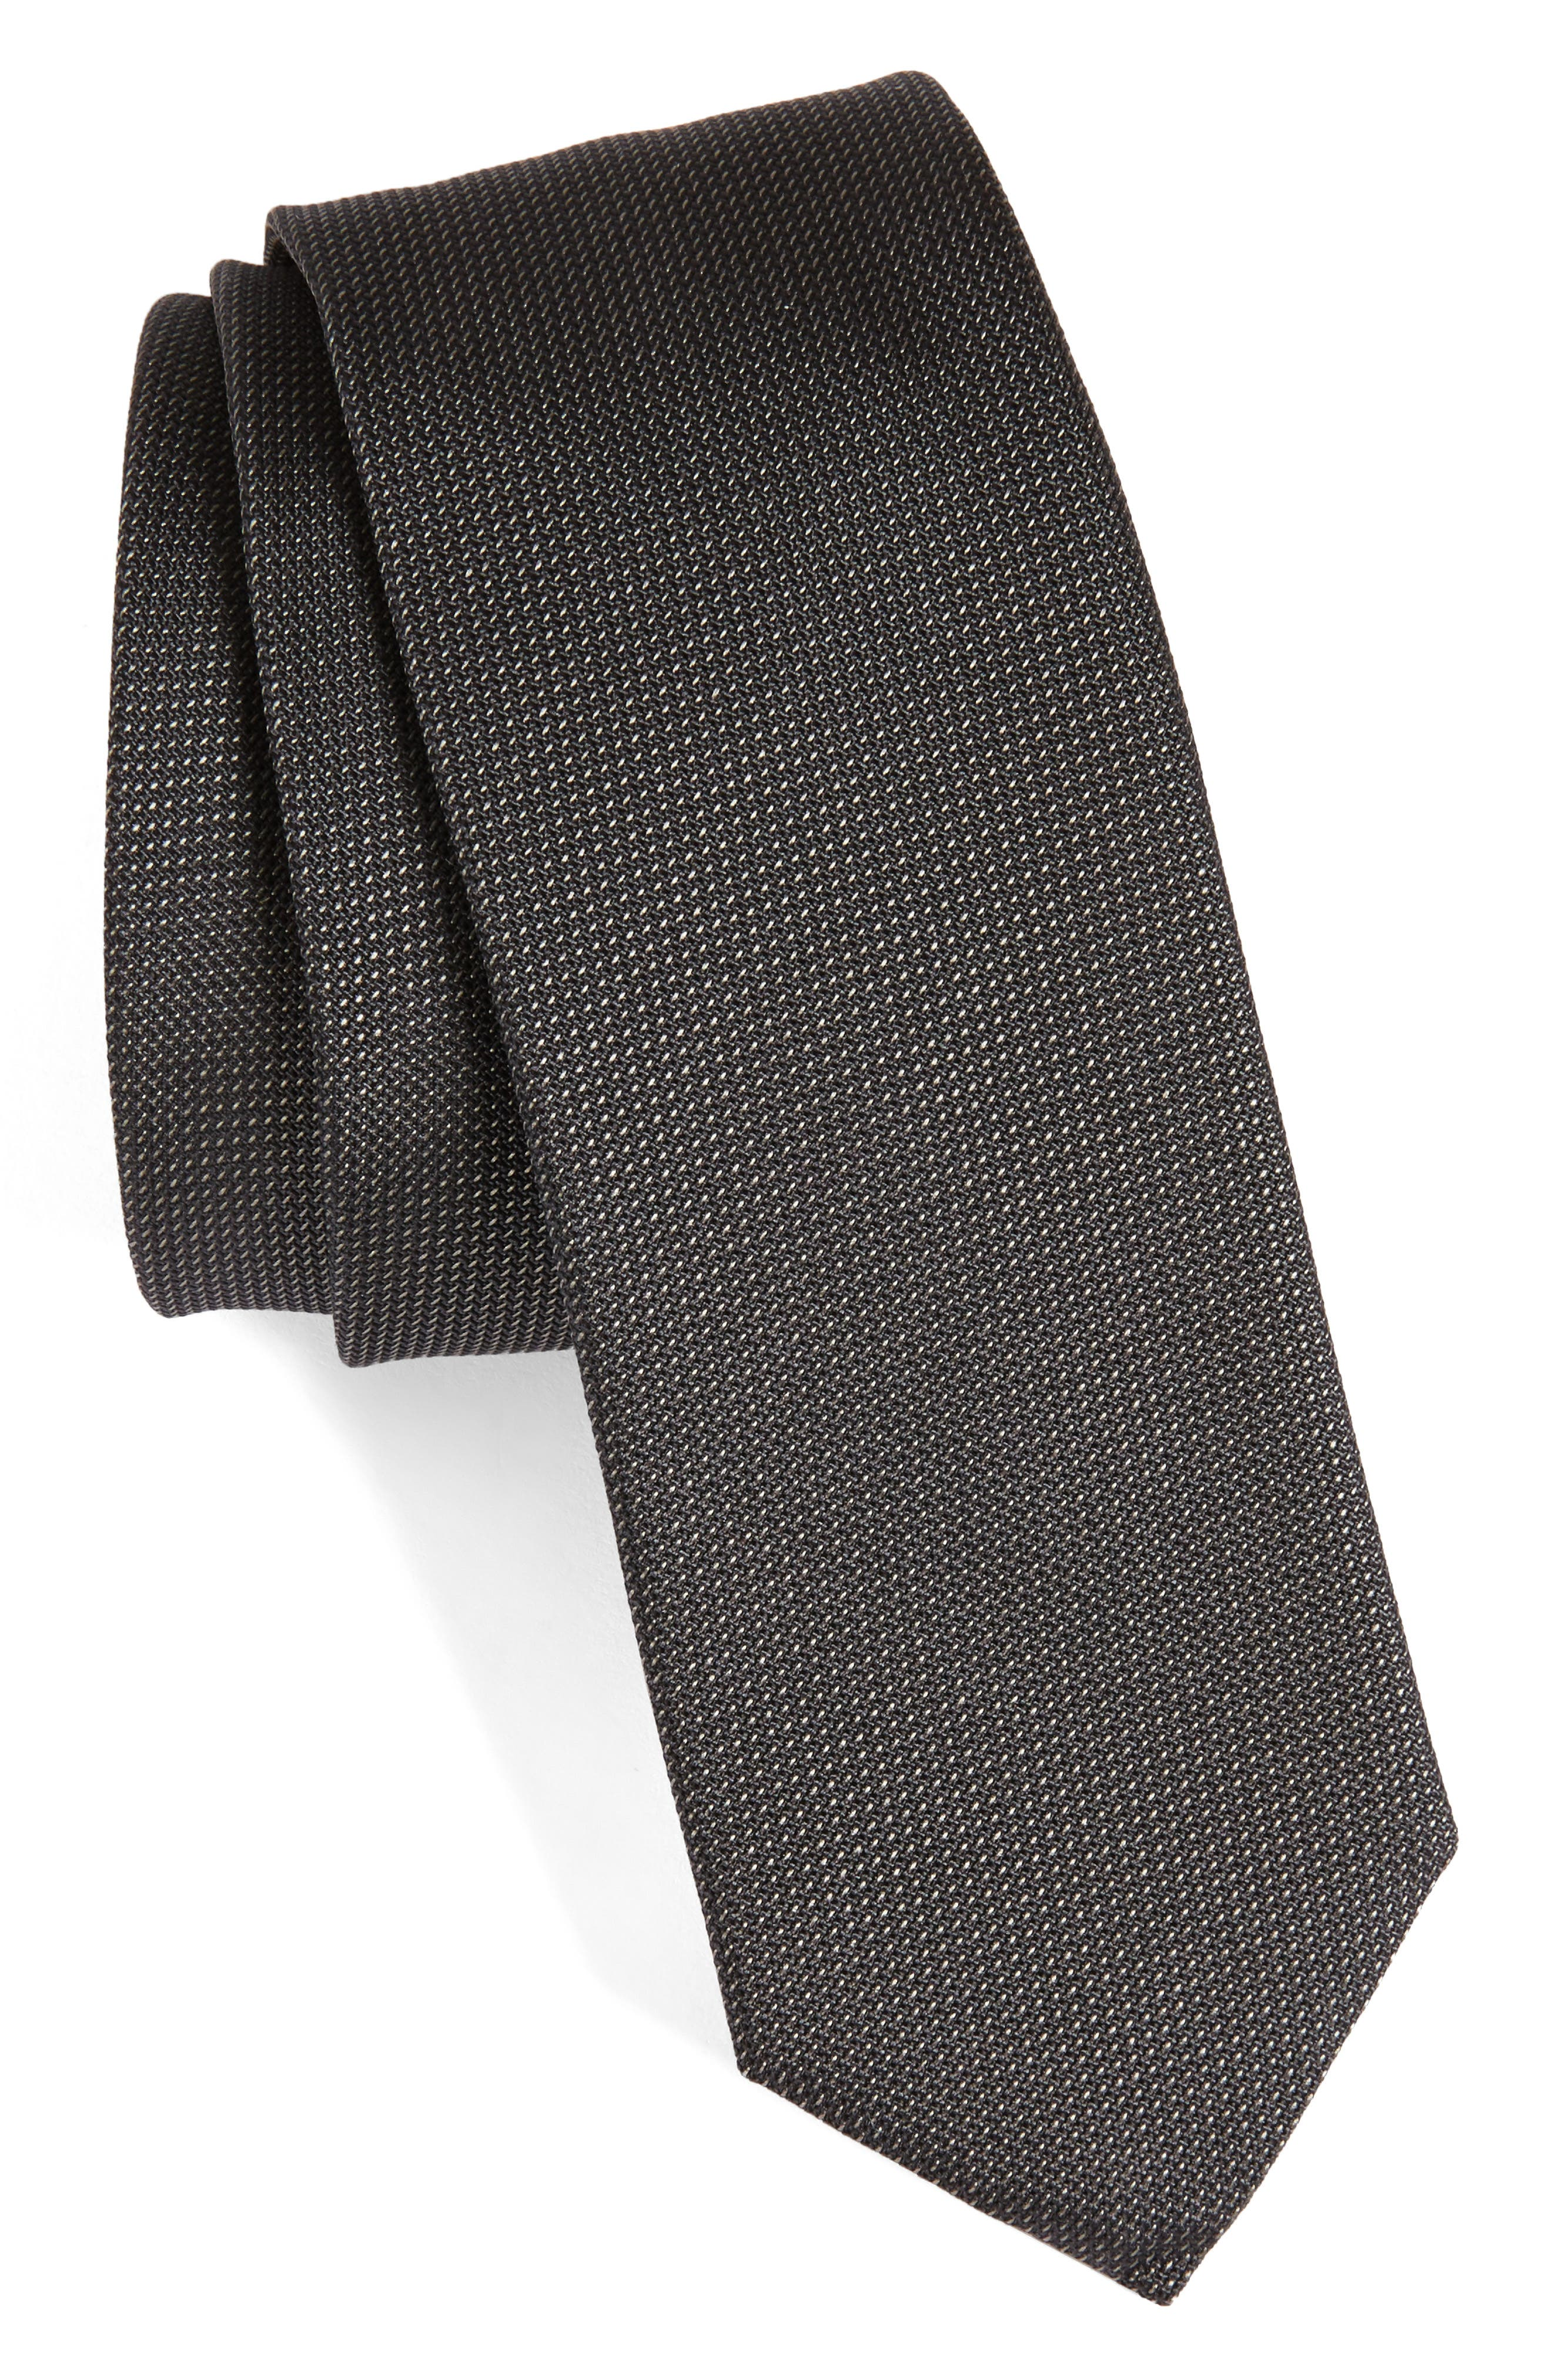 Alternate Image 1 Selected - BOSS Solid Silk Tie